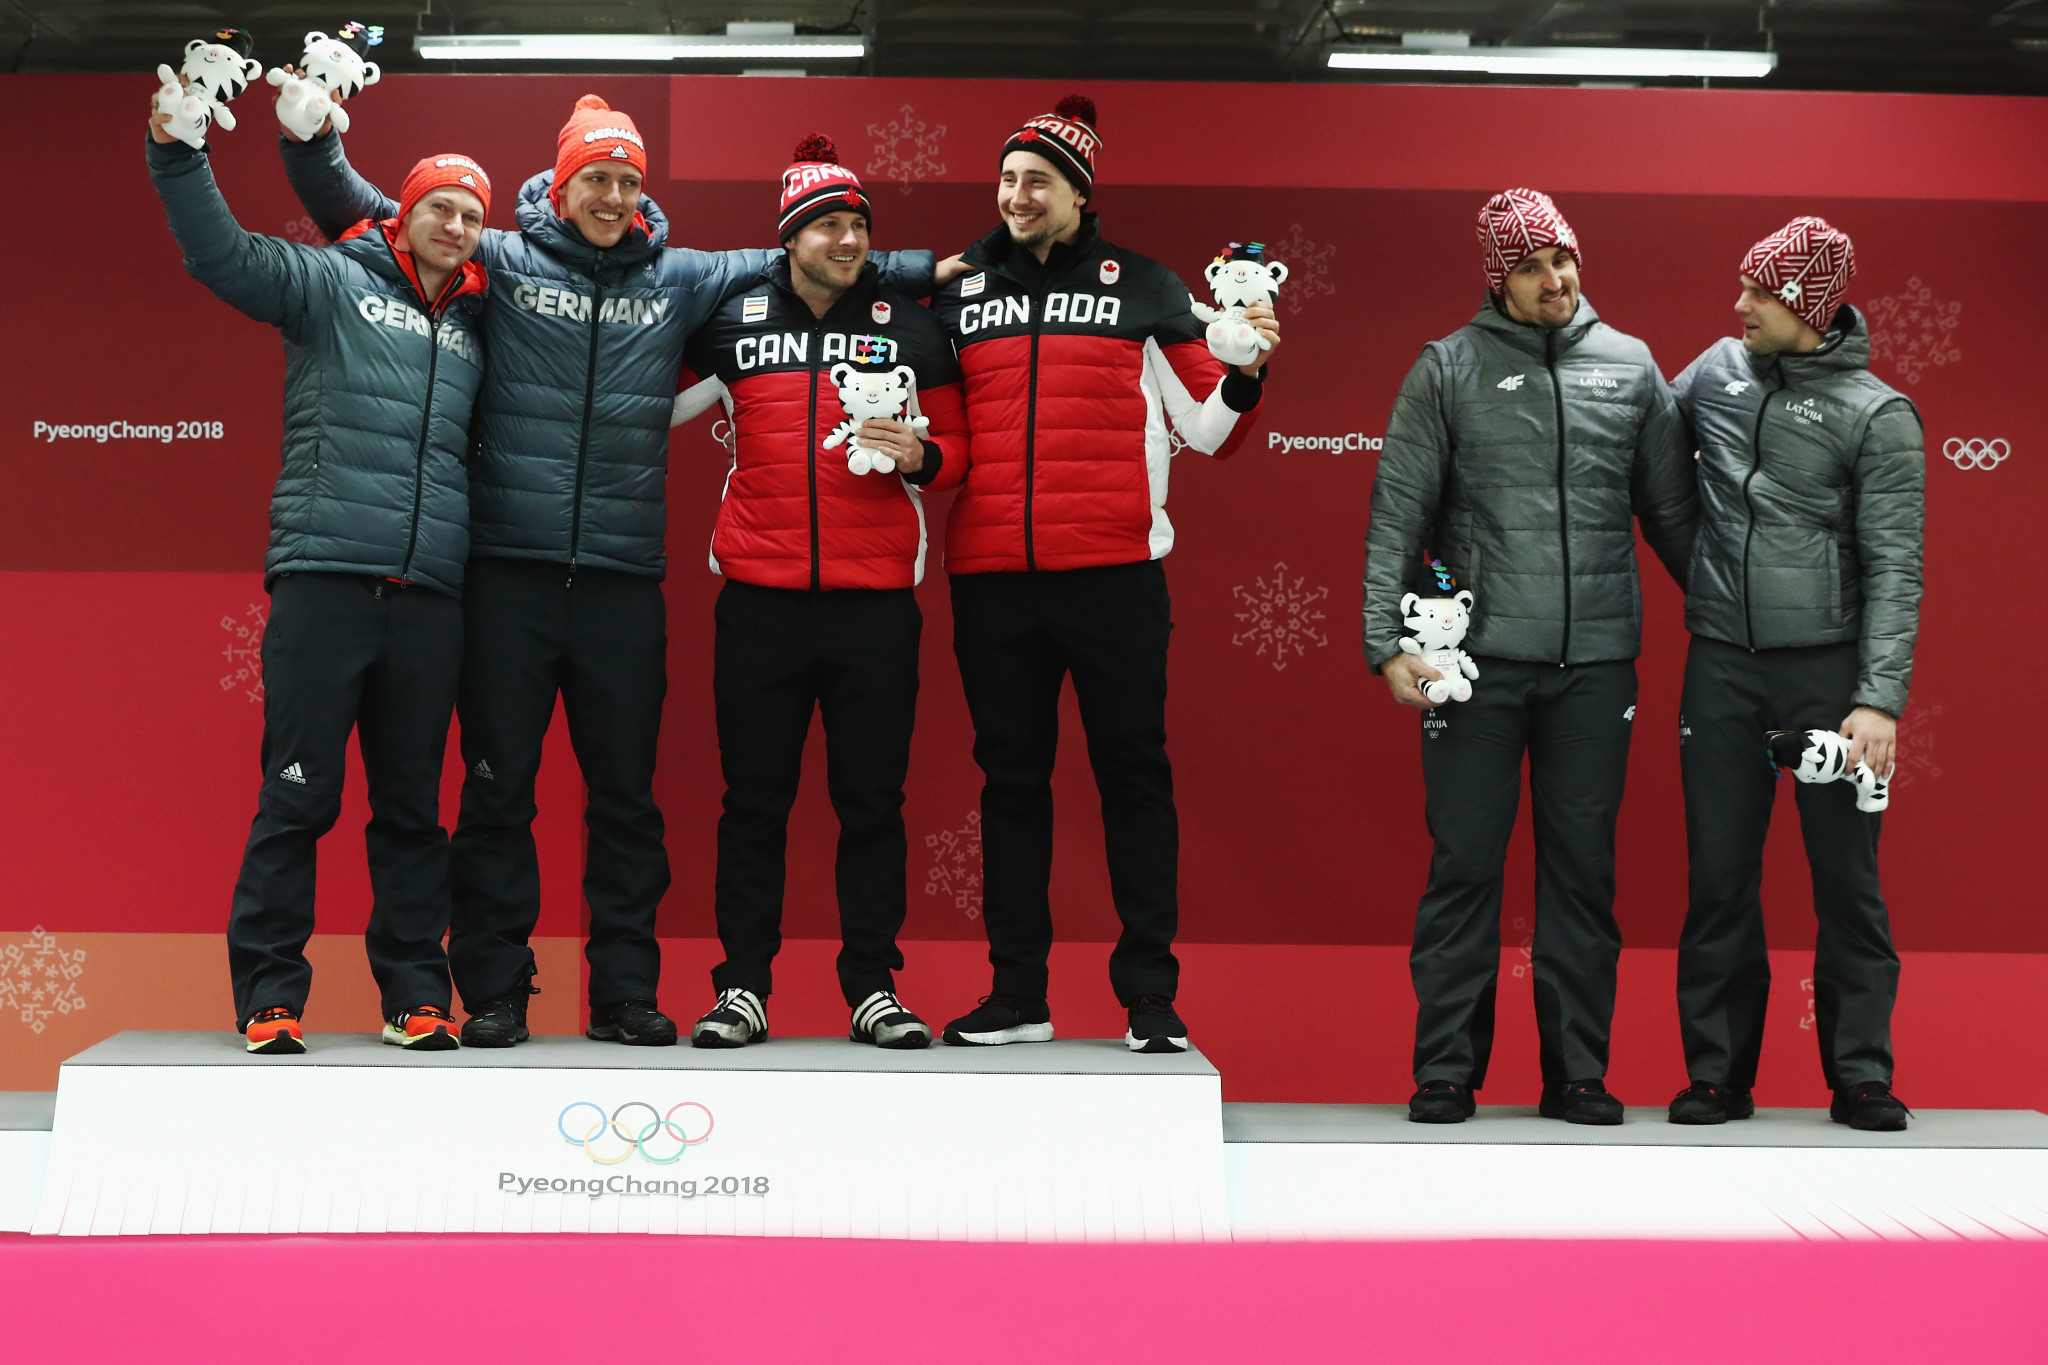 Canada and Germany share gold medal at Pyeongchang 2018 in dramatic two-man bobsleigh event